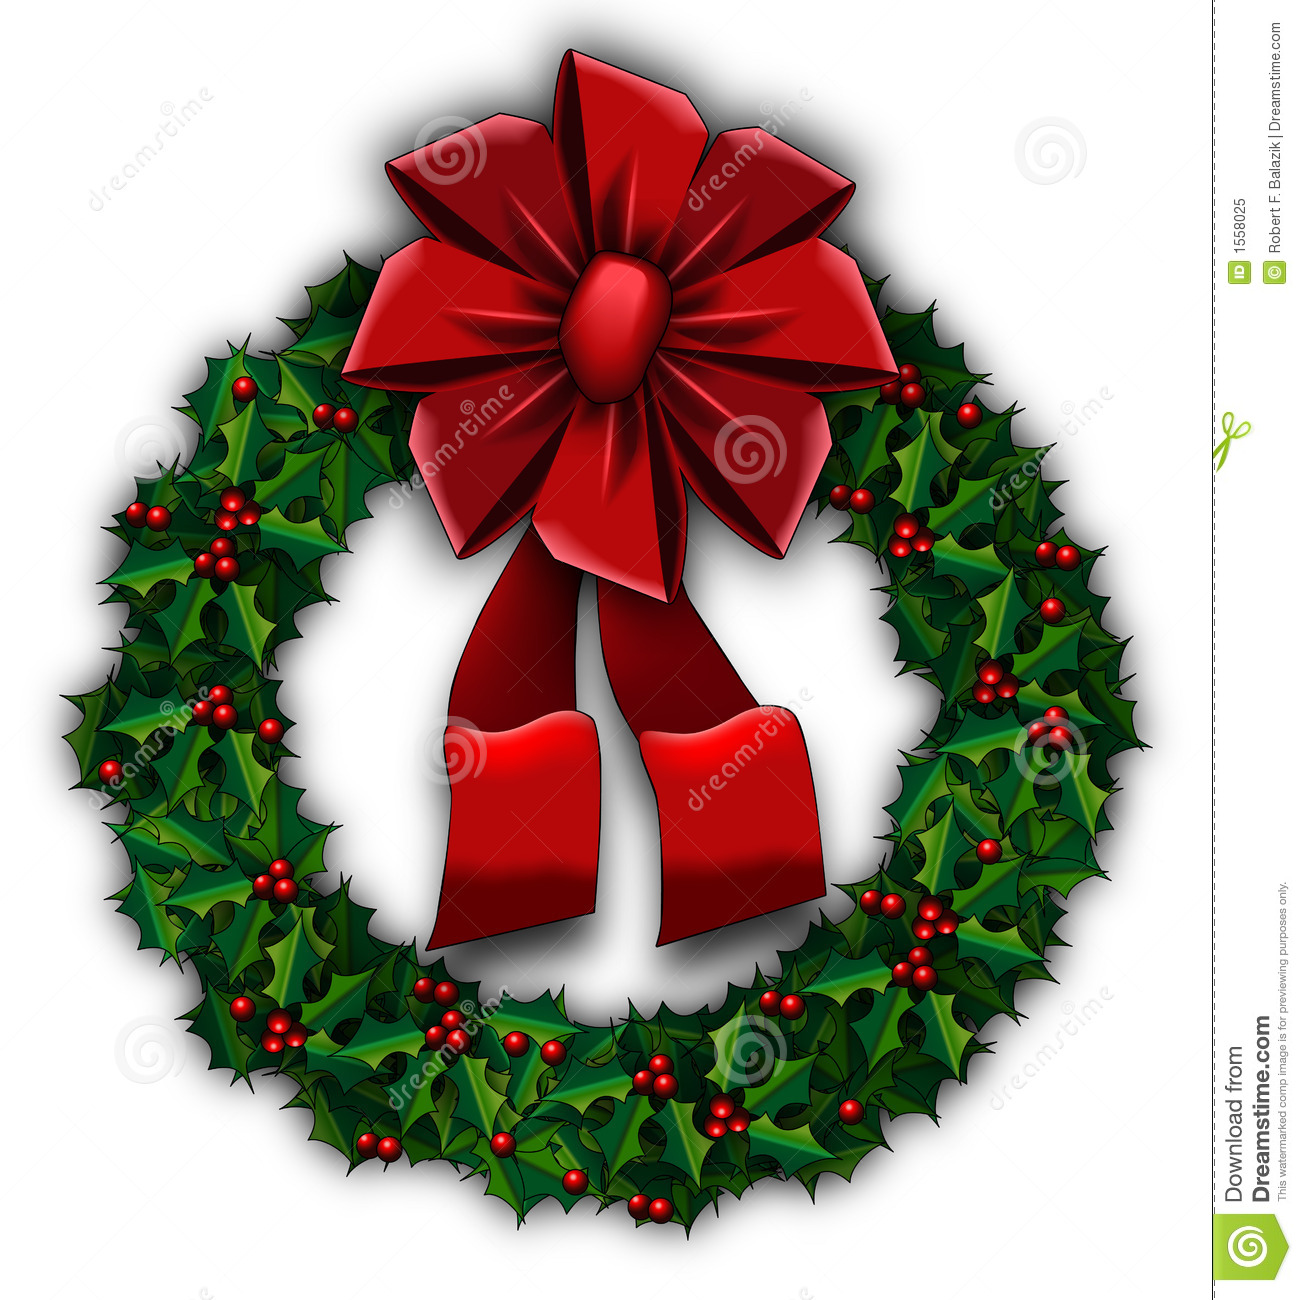 Holly wreath royalty free stock photo image